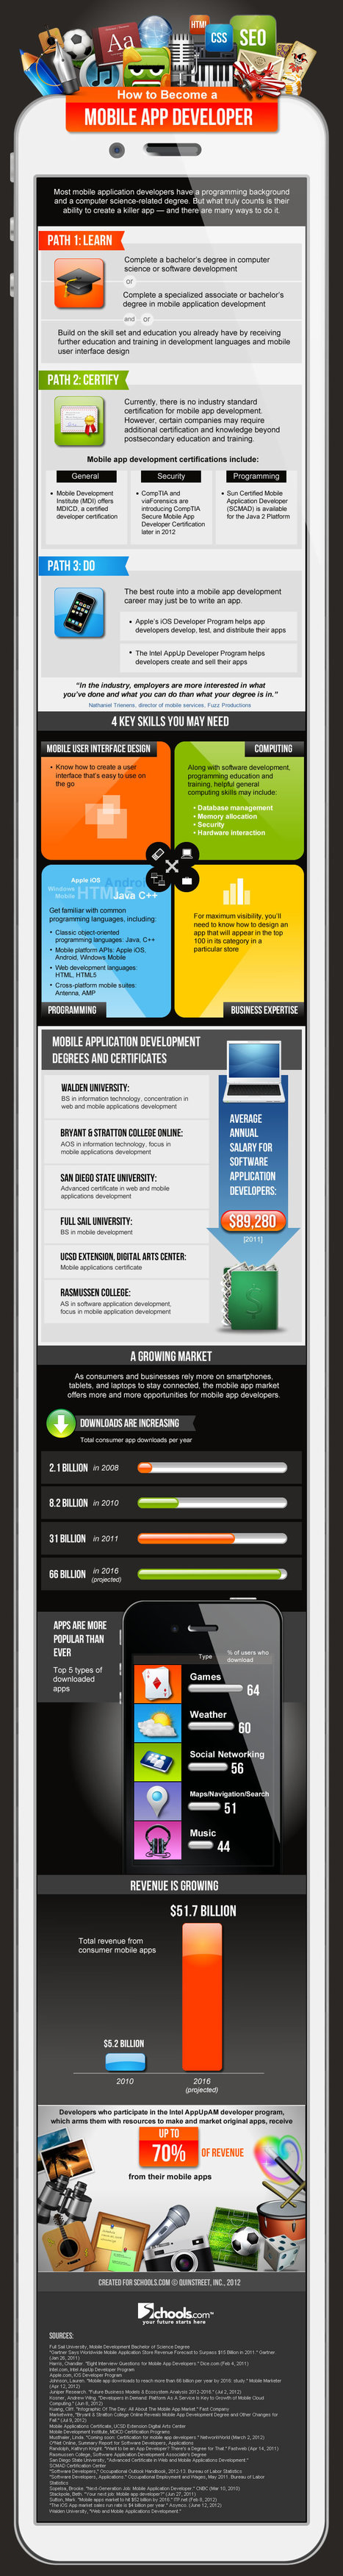 Tony Vincent's Learning in Hand - Blog - How to Become a Mobile App Developer[Infographic] | mLearning weekly | Scoop.it